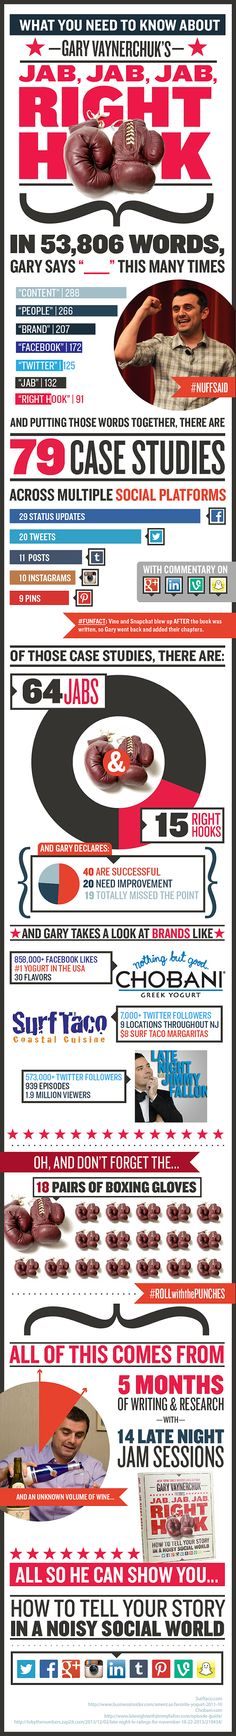 Infographic about Gary Vaynerchuk's book Jab, Jab, Jab, Right Hook.. #jjjrh